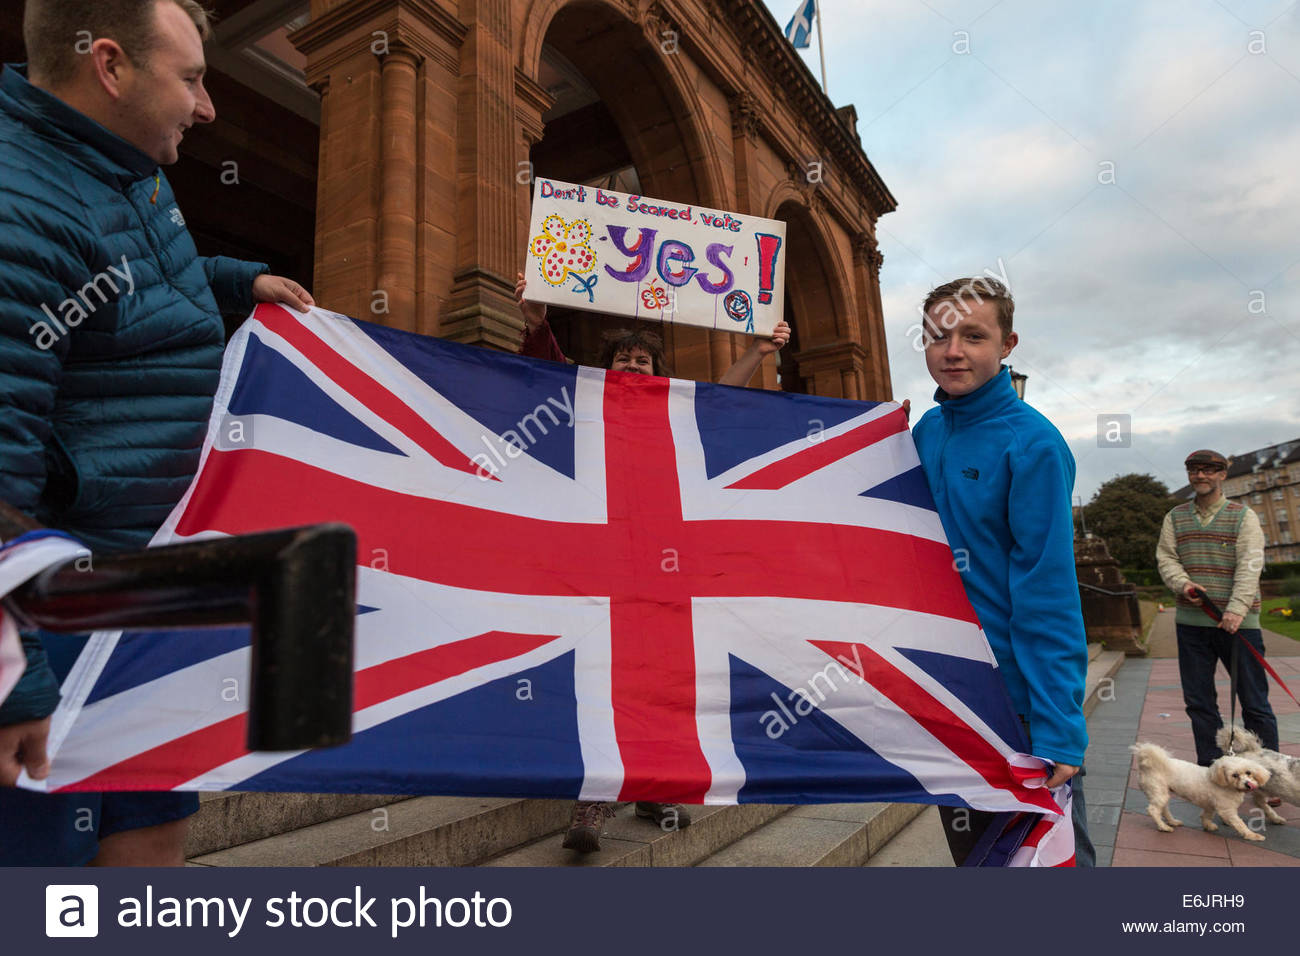 Glasgow, Scotland. 25th Aug, 2014. Pro-union and pro-independence supporters demonstrate in front of Kelvingrove - Stock Image